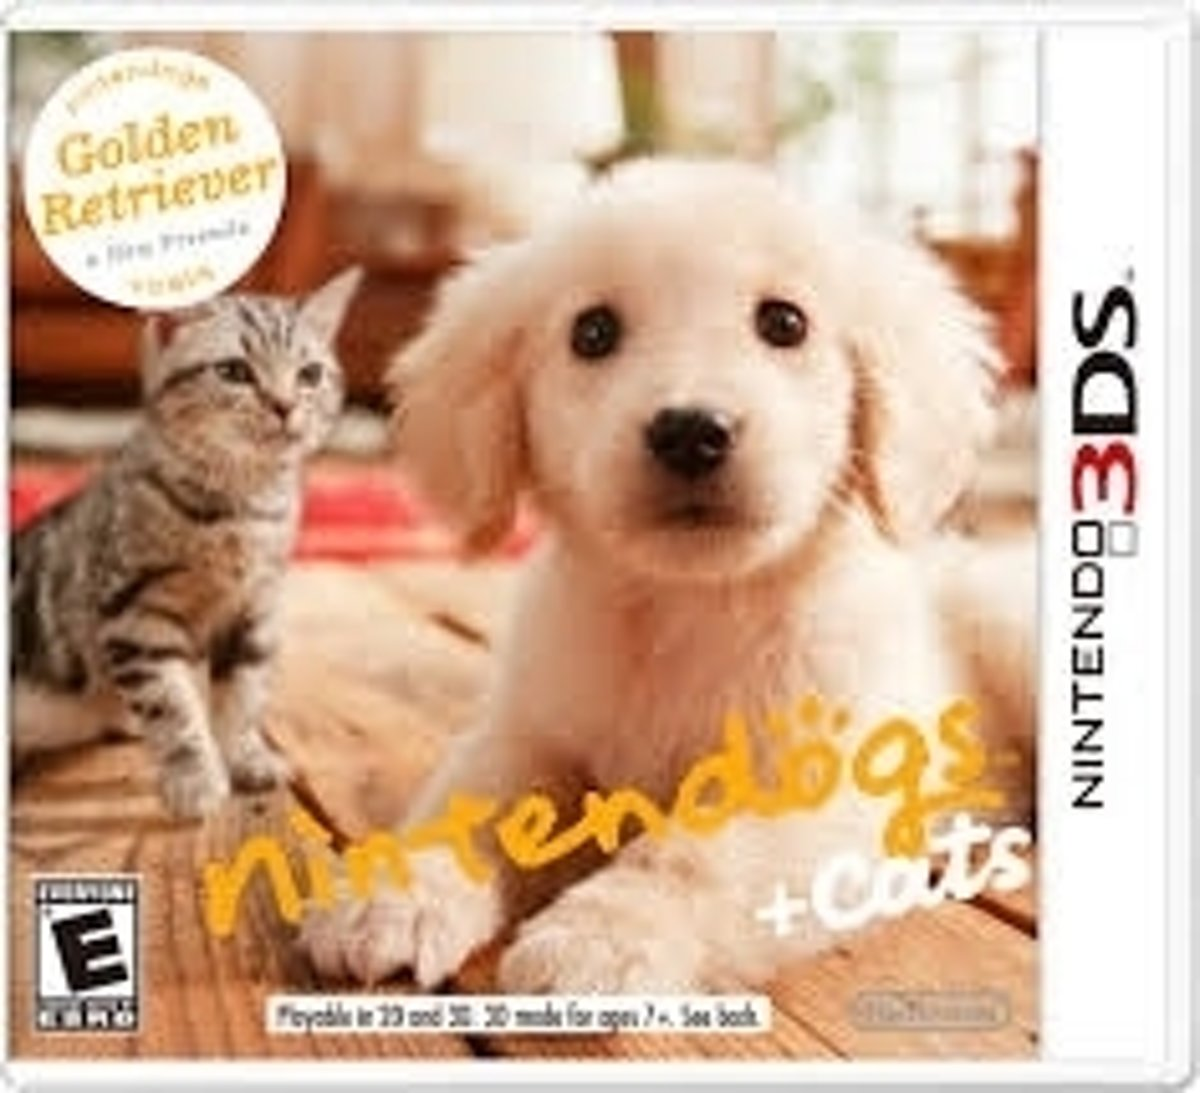 gs and Cats 3D: Golden Retriever /3DS